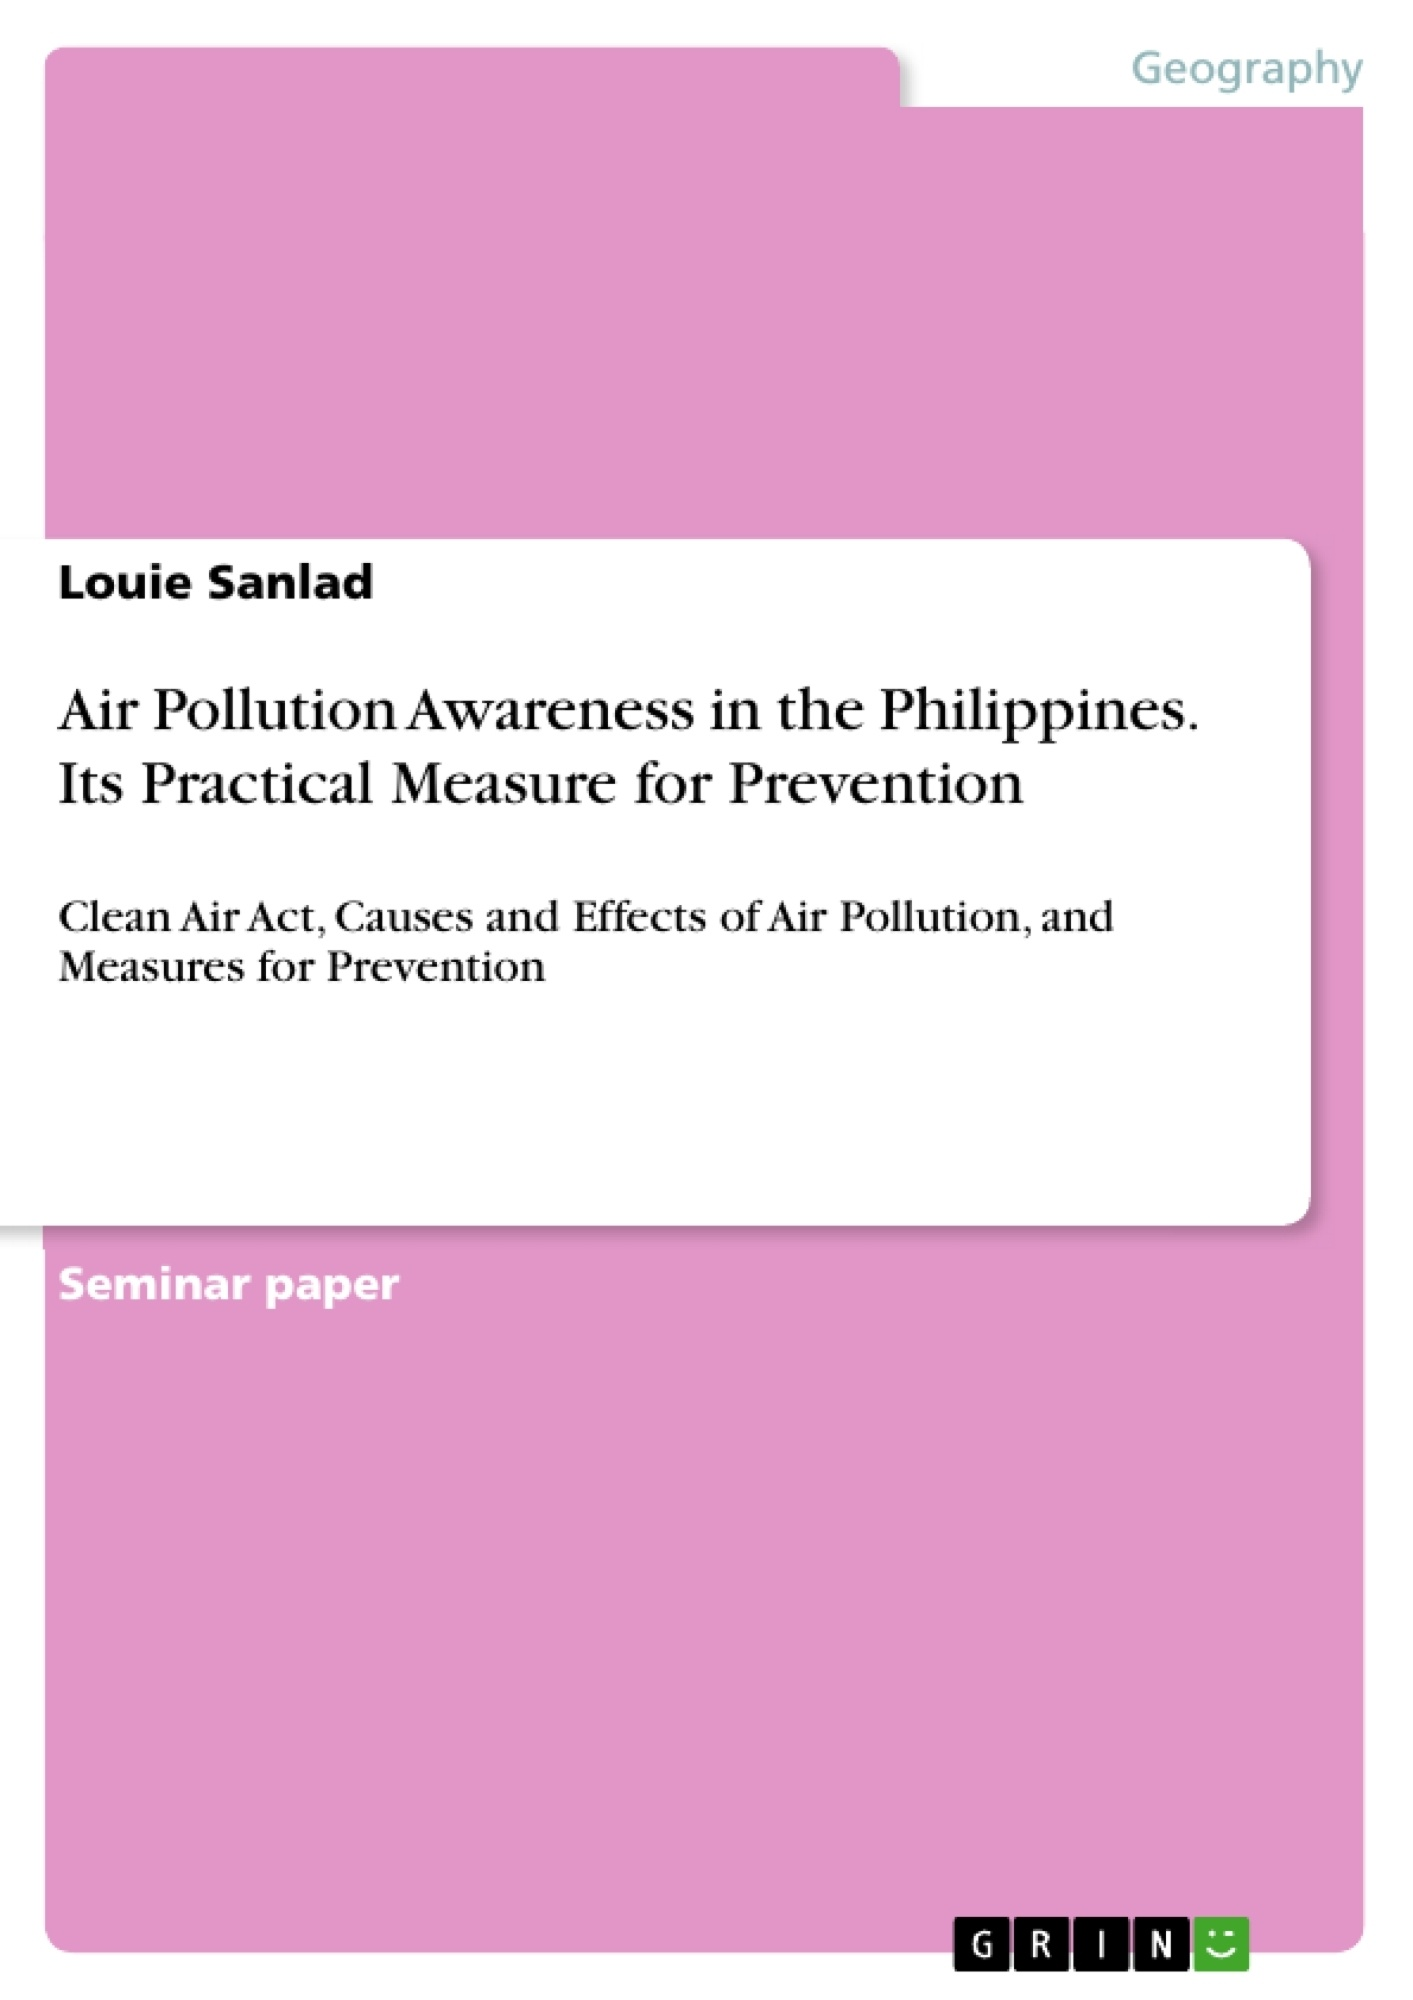 Title: Air Pollution Awareness in the Philippines. Its Practical Measure for Prevention